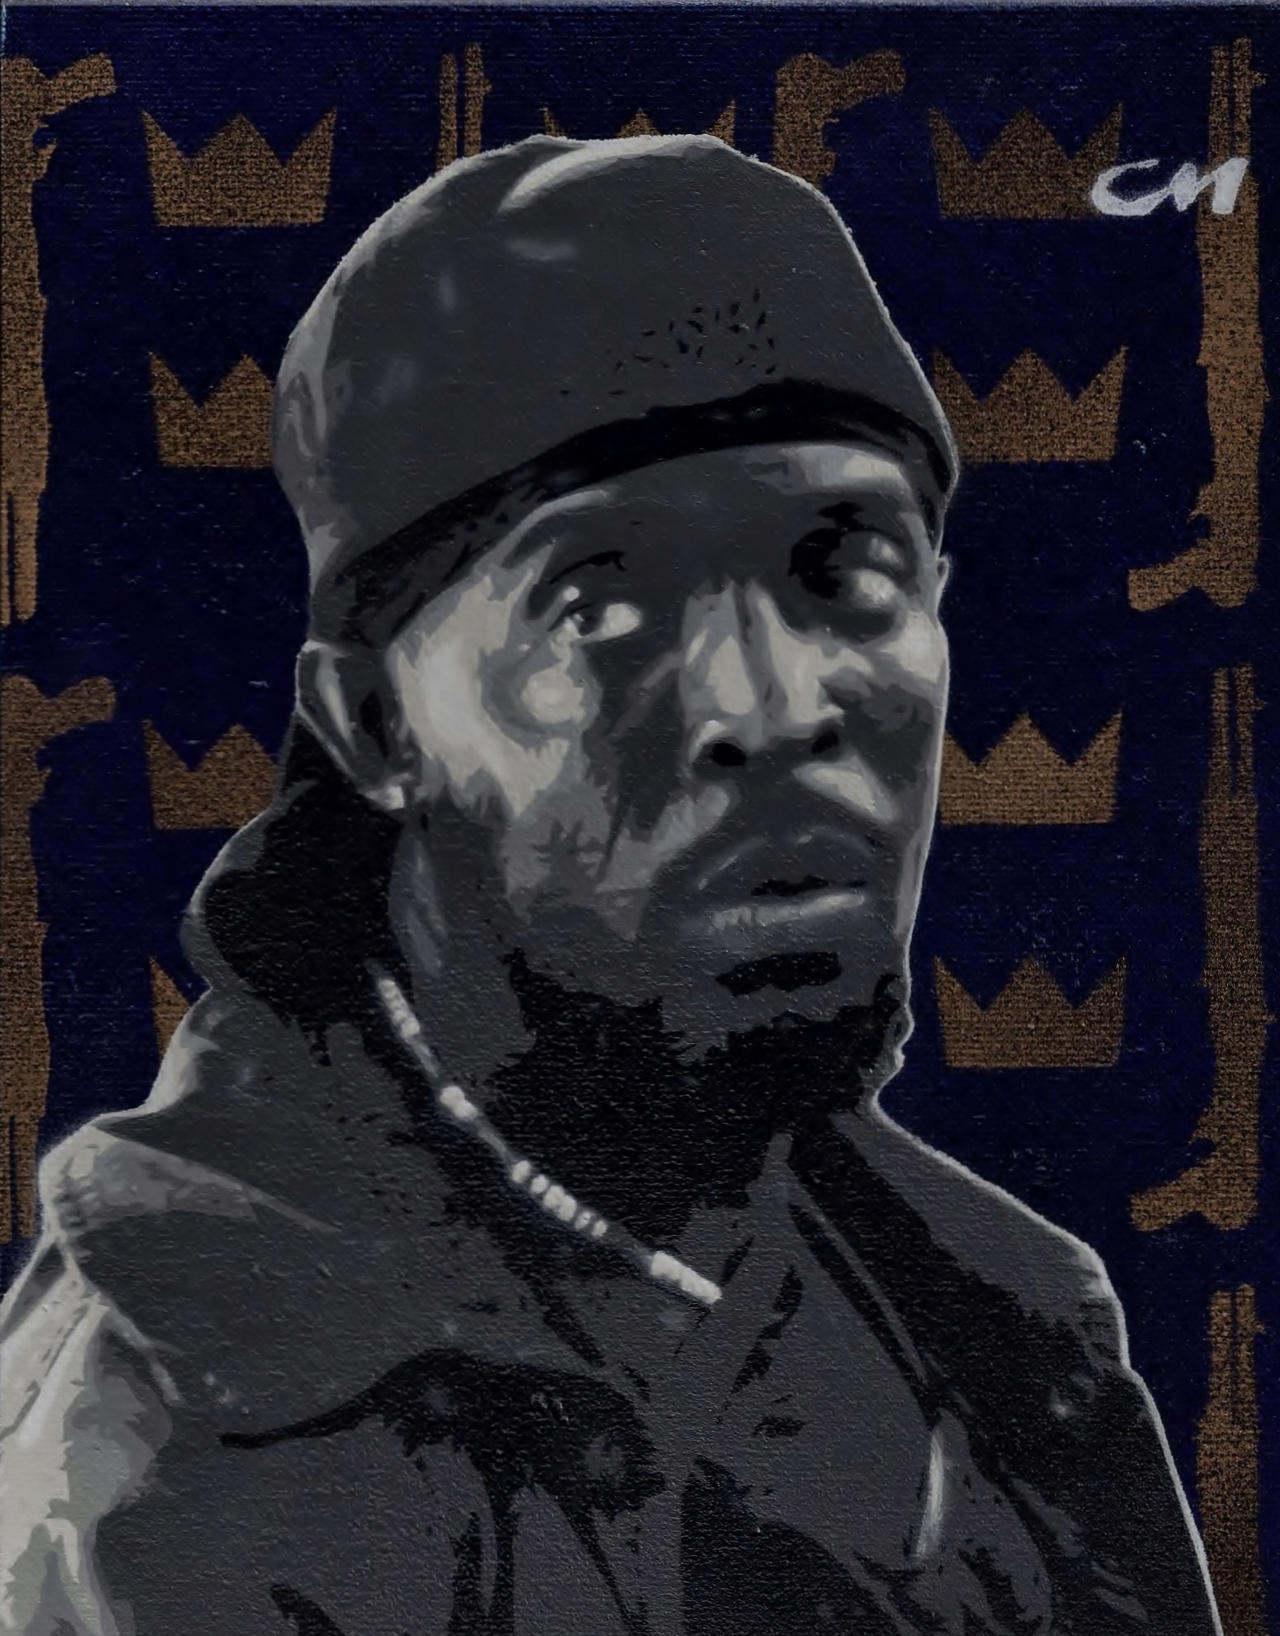 Omar Little From HBOs The Wire By Stencils Chase